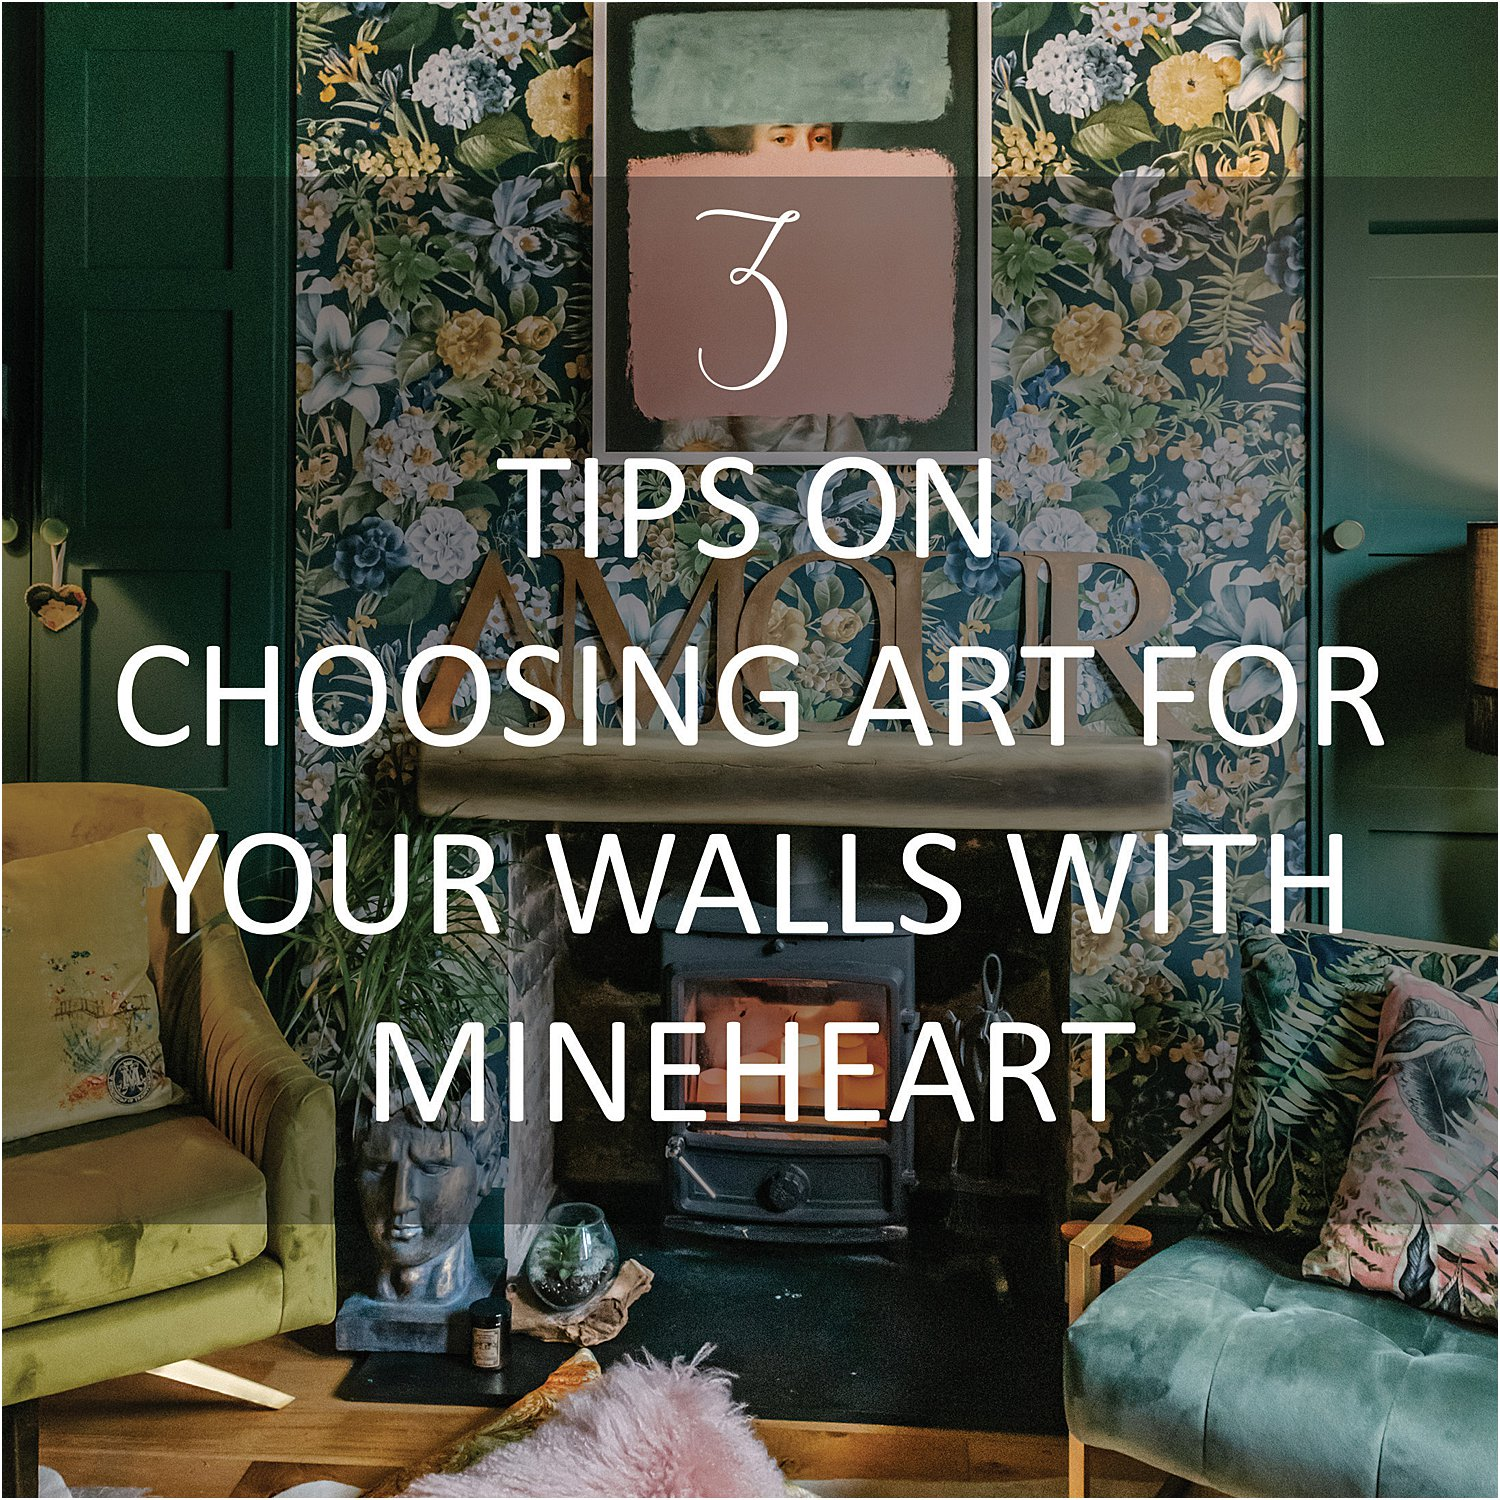 how-to-choose-art-for-your-walls-mineheart